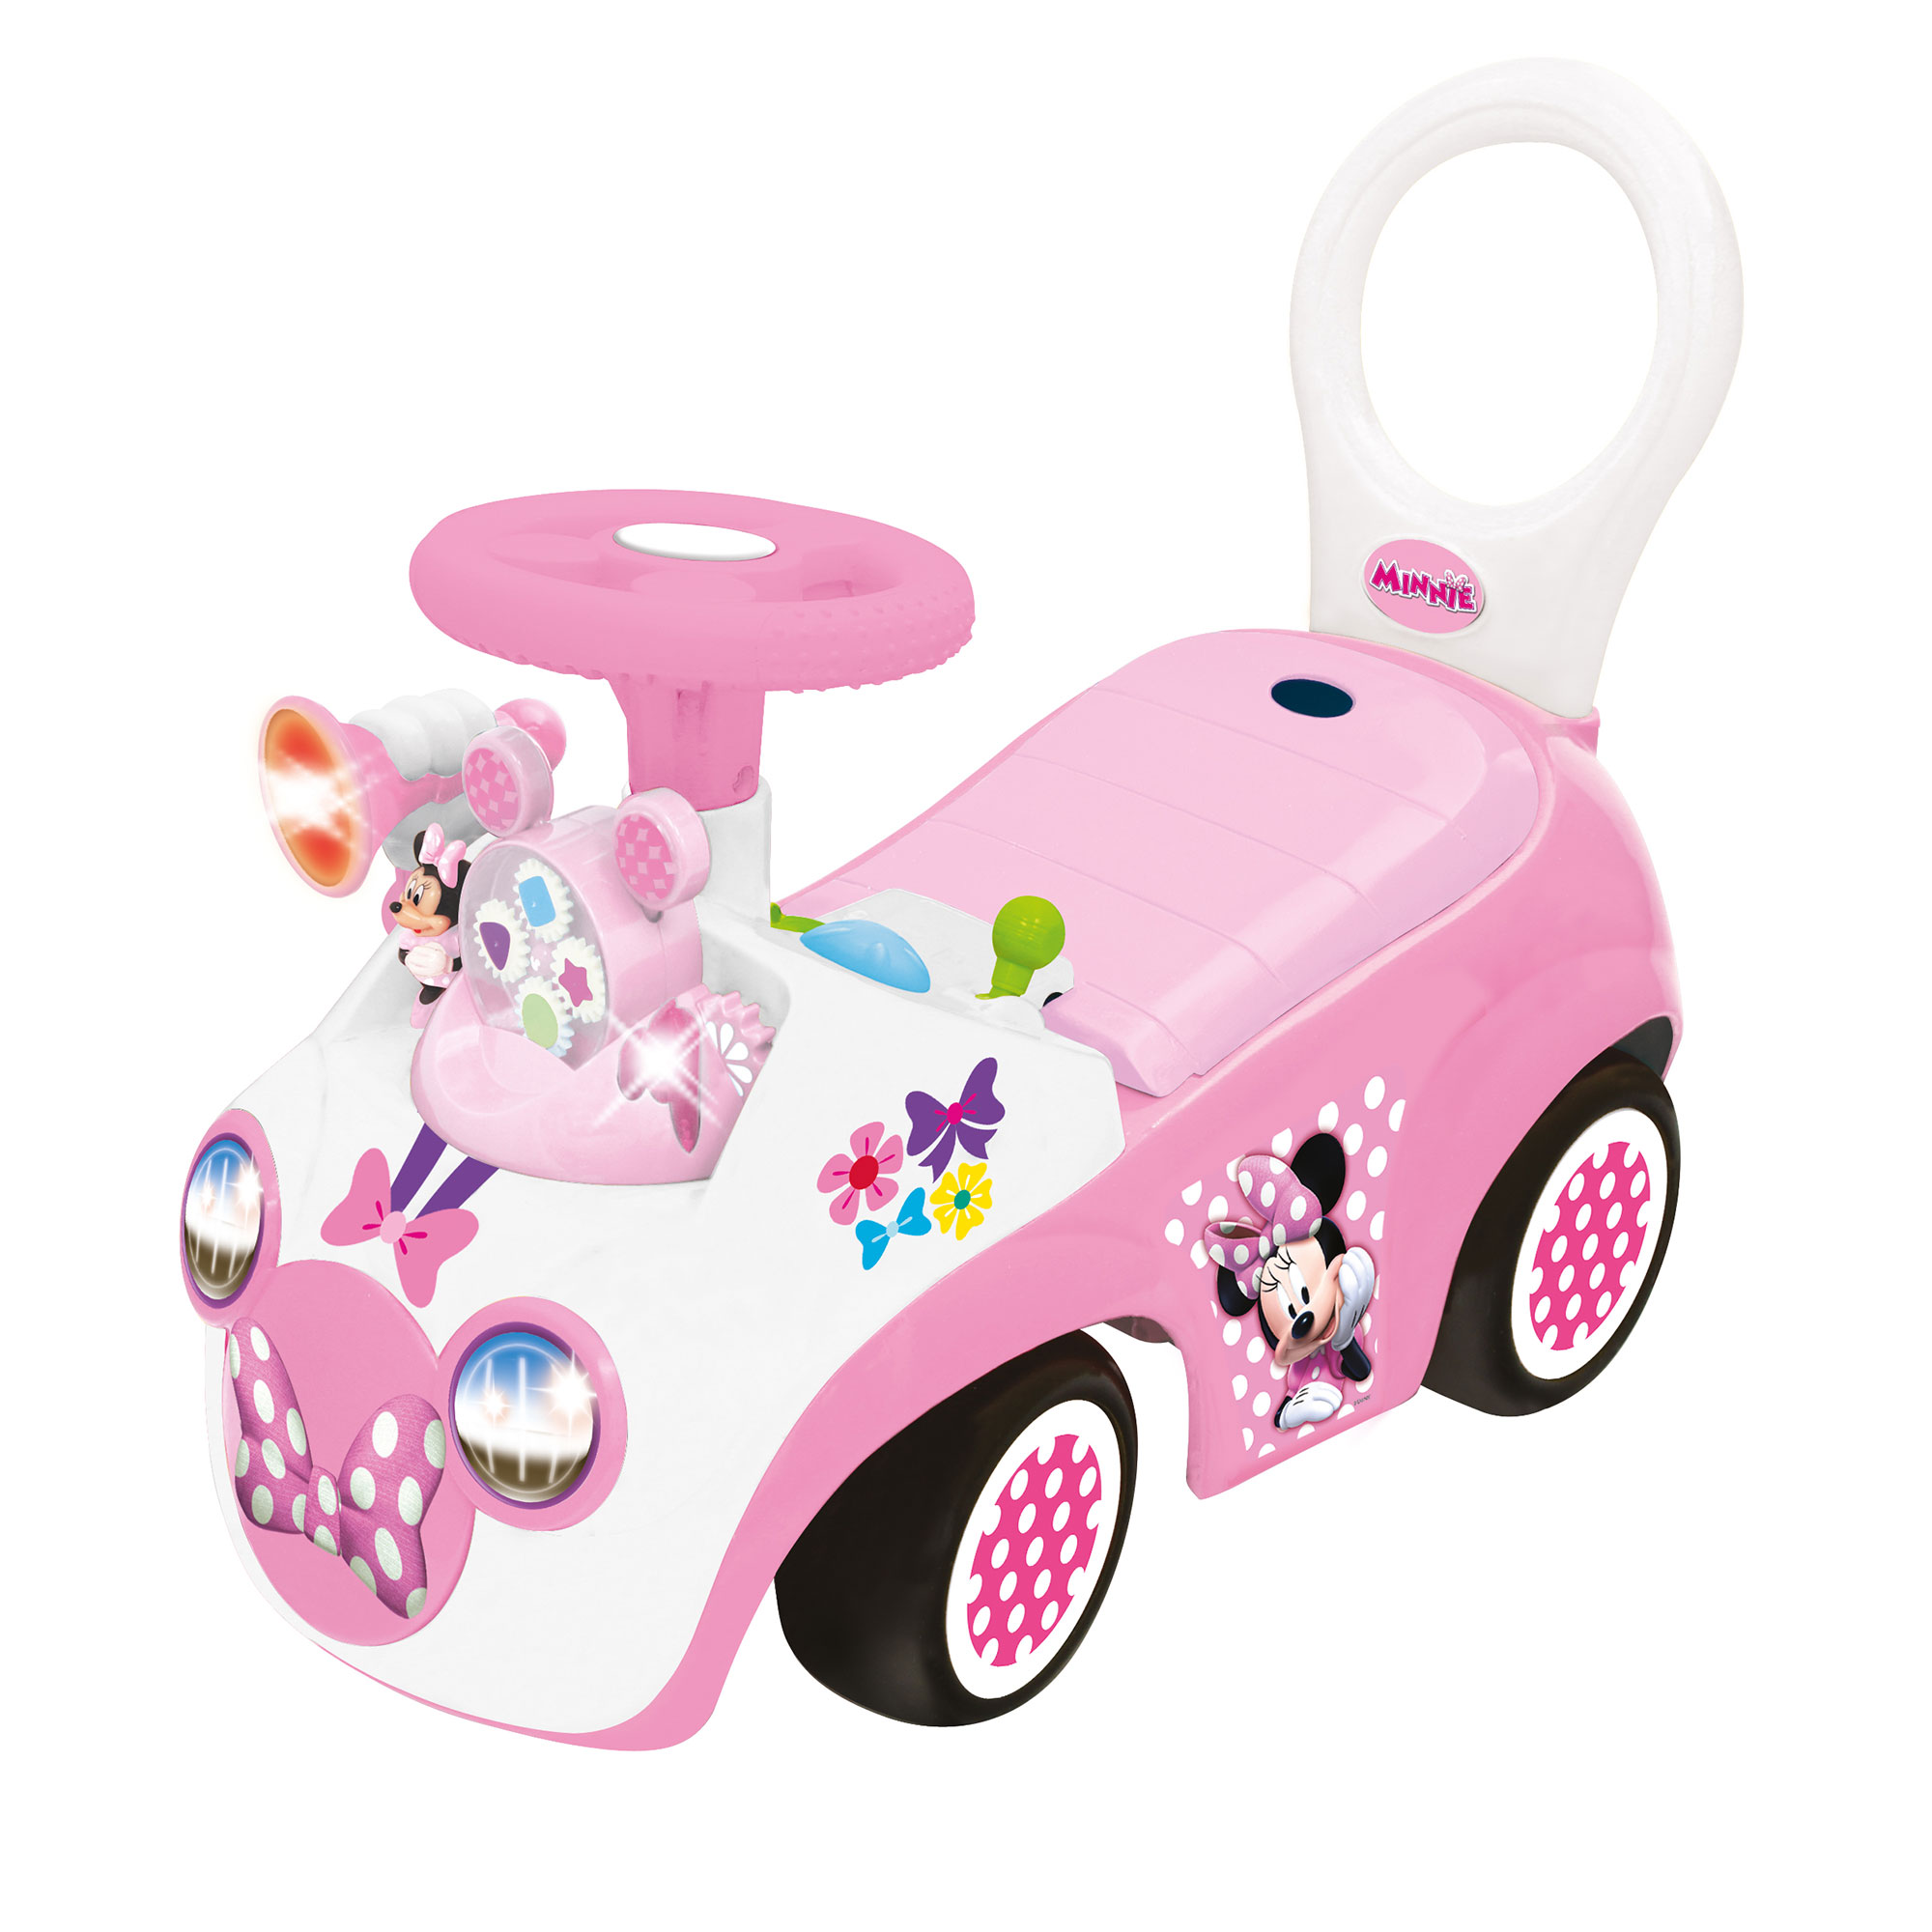 Kiddieland Minnie Mouse Activity Gears Interactive Ride On Push Car with Sounds